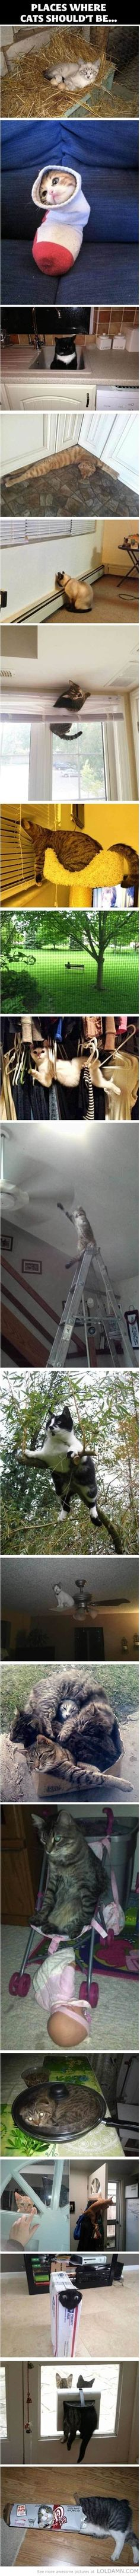 Funny cats: Places where cats shouldn't be LOL, DAMN!